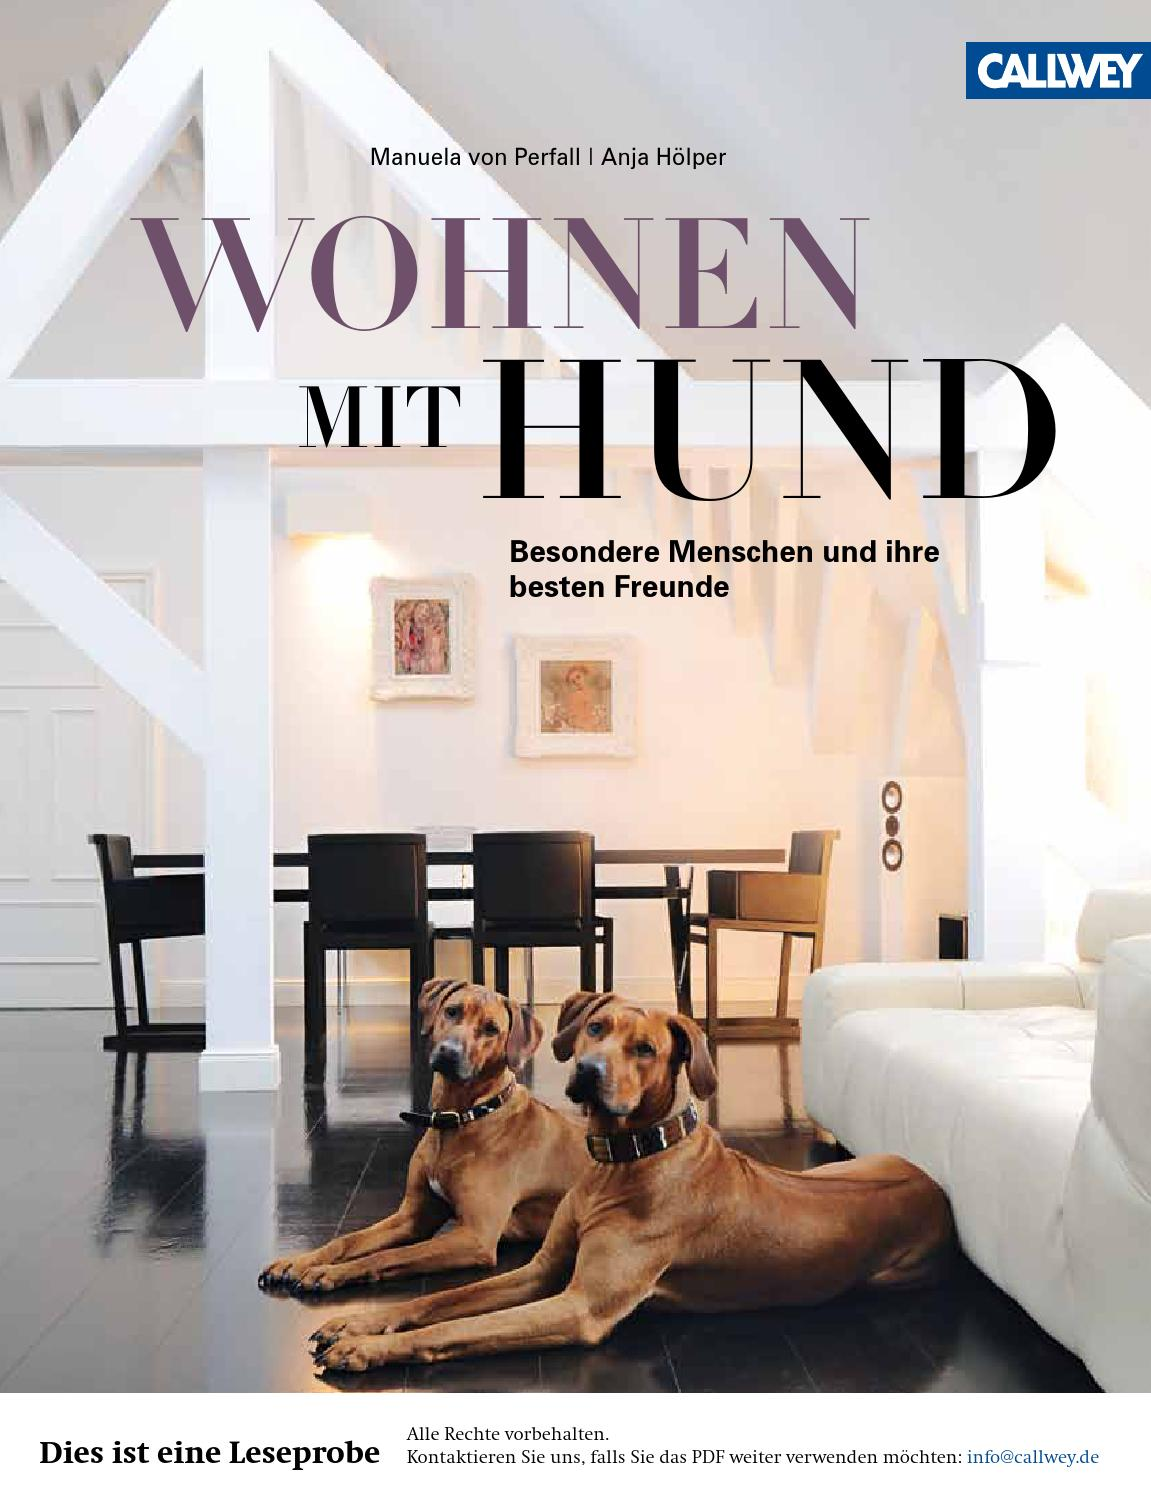 perfall wohnen mit hund callwey issuu by georg d w callwey gmbh co kg issuu. Black Bedroom Furniture Sets. Home Design Ideas